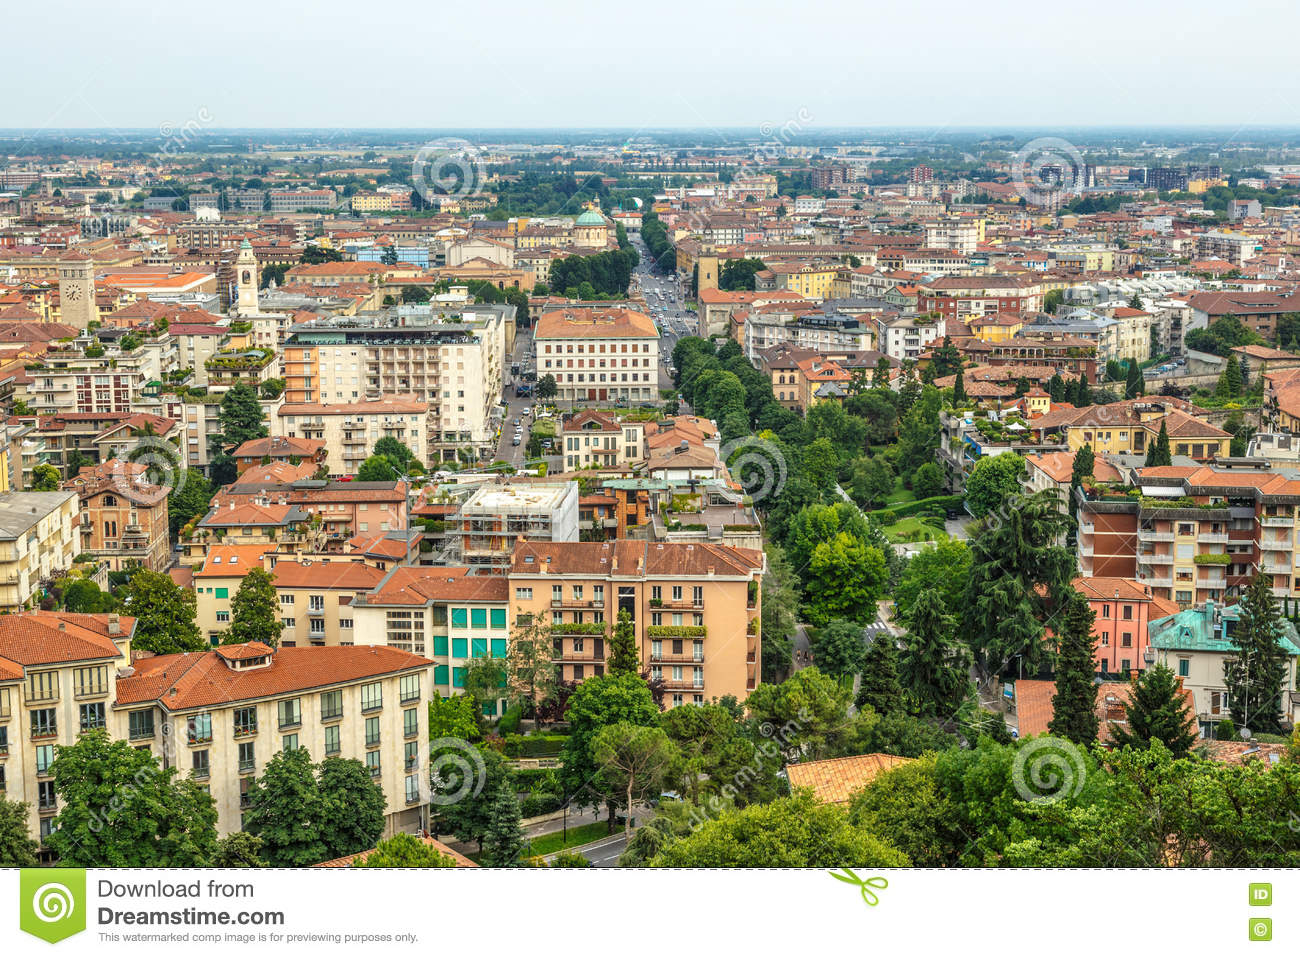 Bergamo city view from above